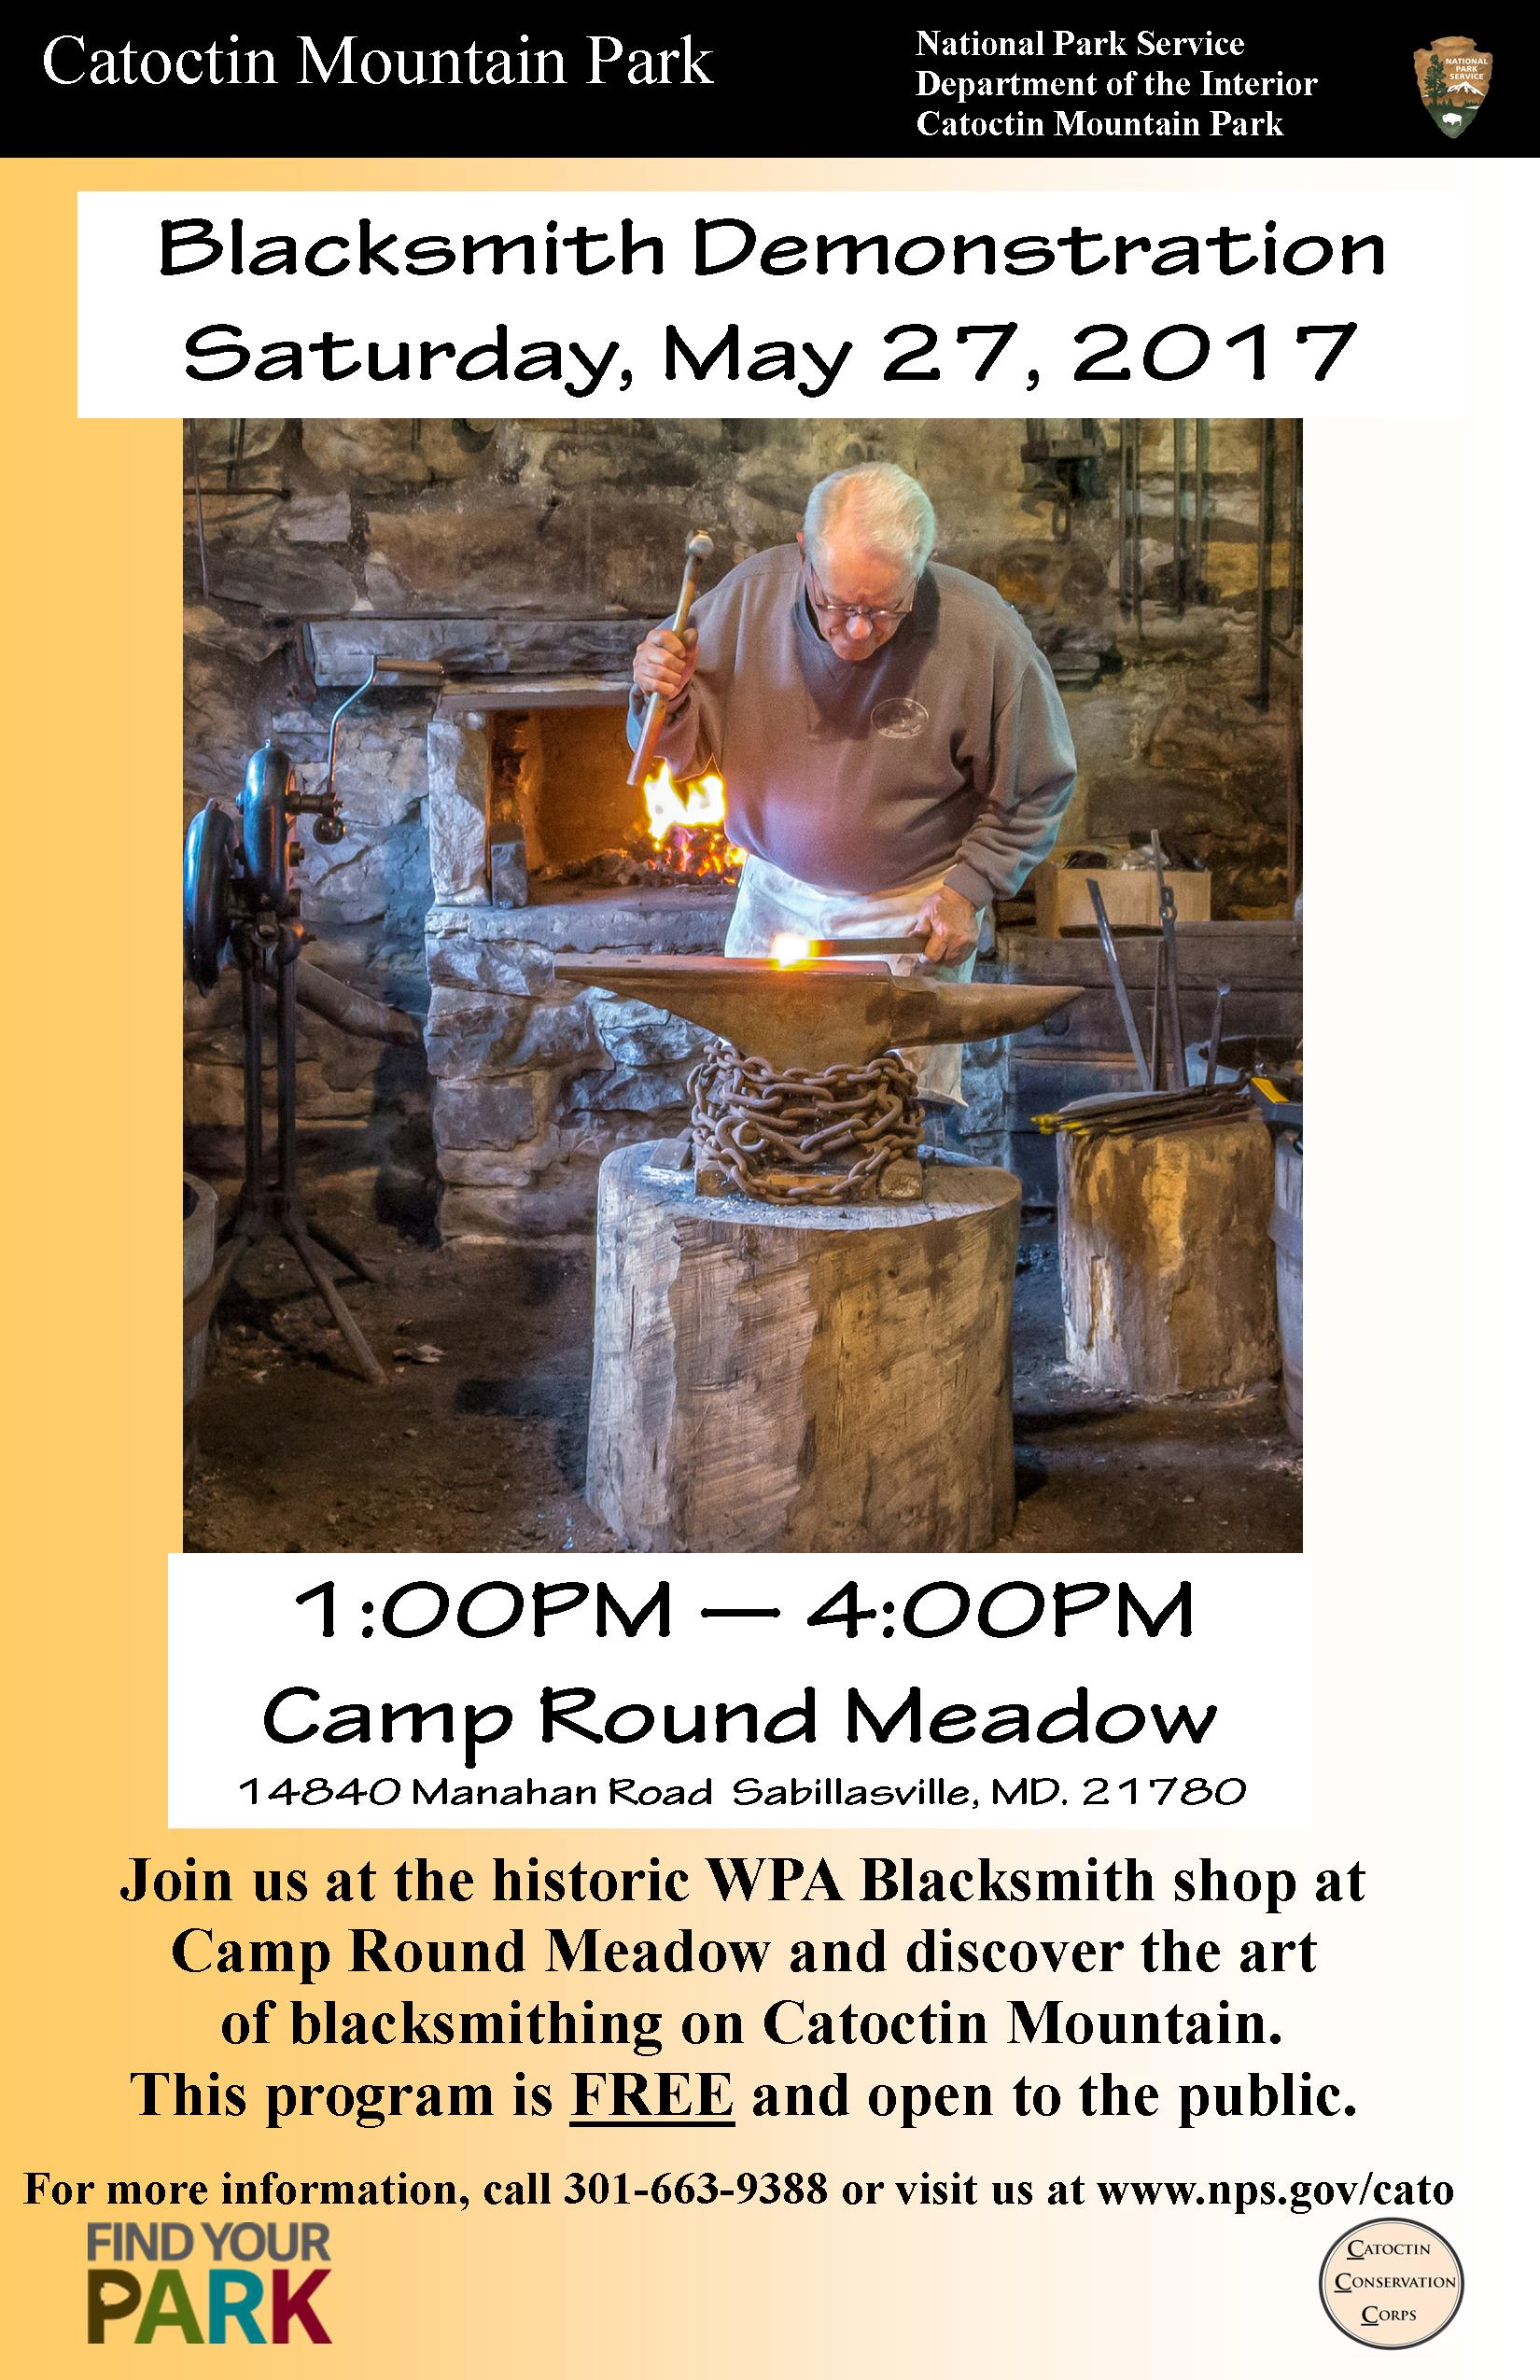 Image of May 27 Blacksmith Demonstration Poster